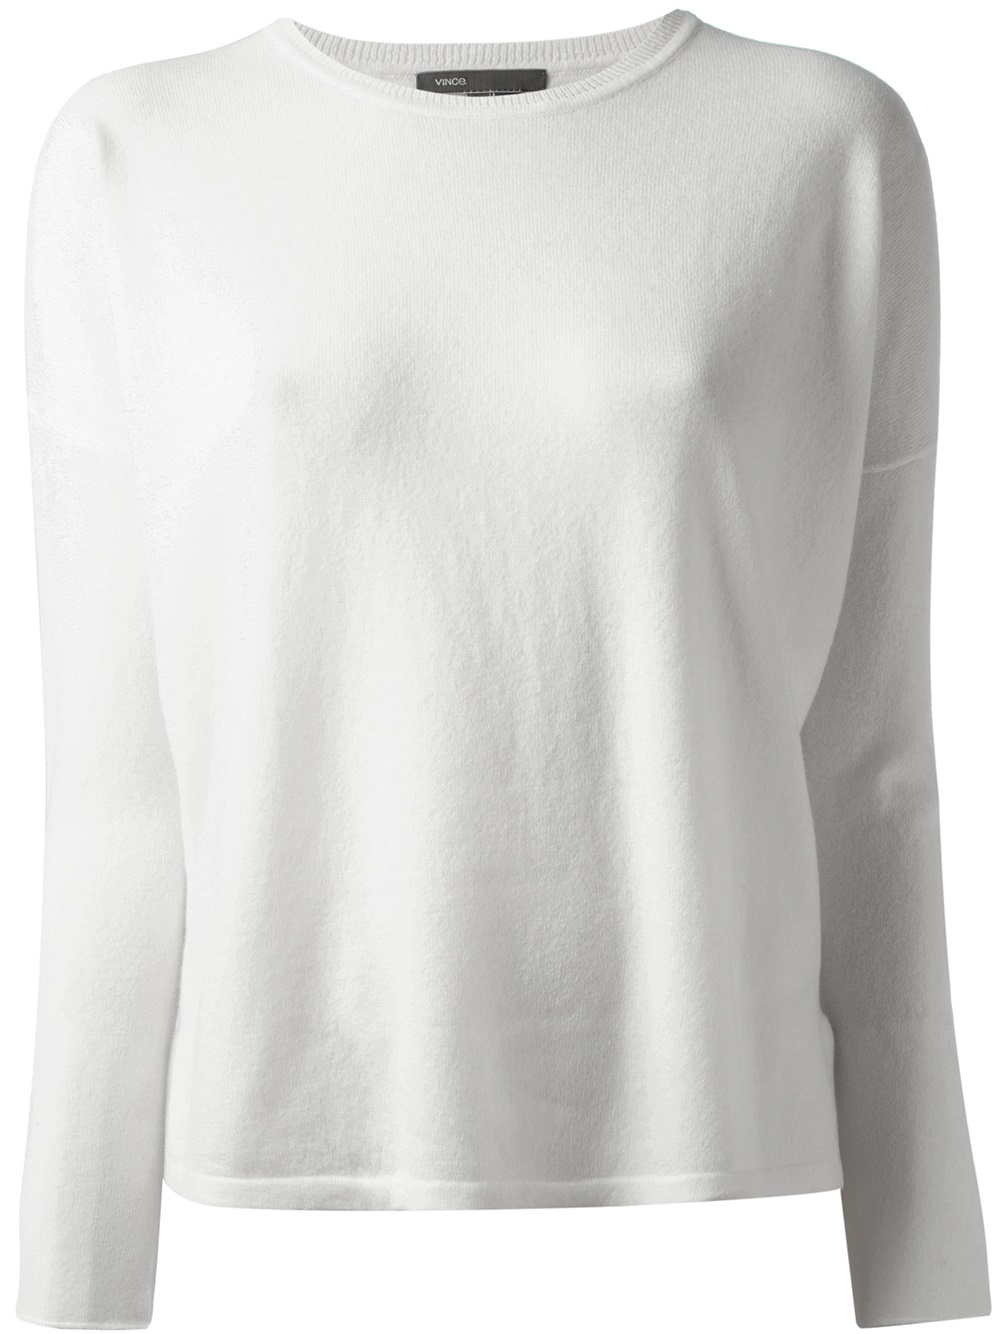 Vince Crew Neck Sweater in White | Lyst